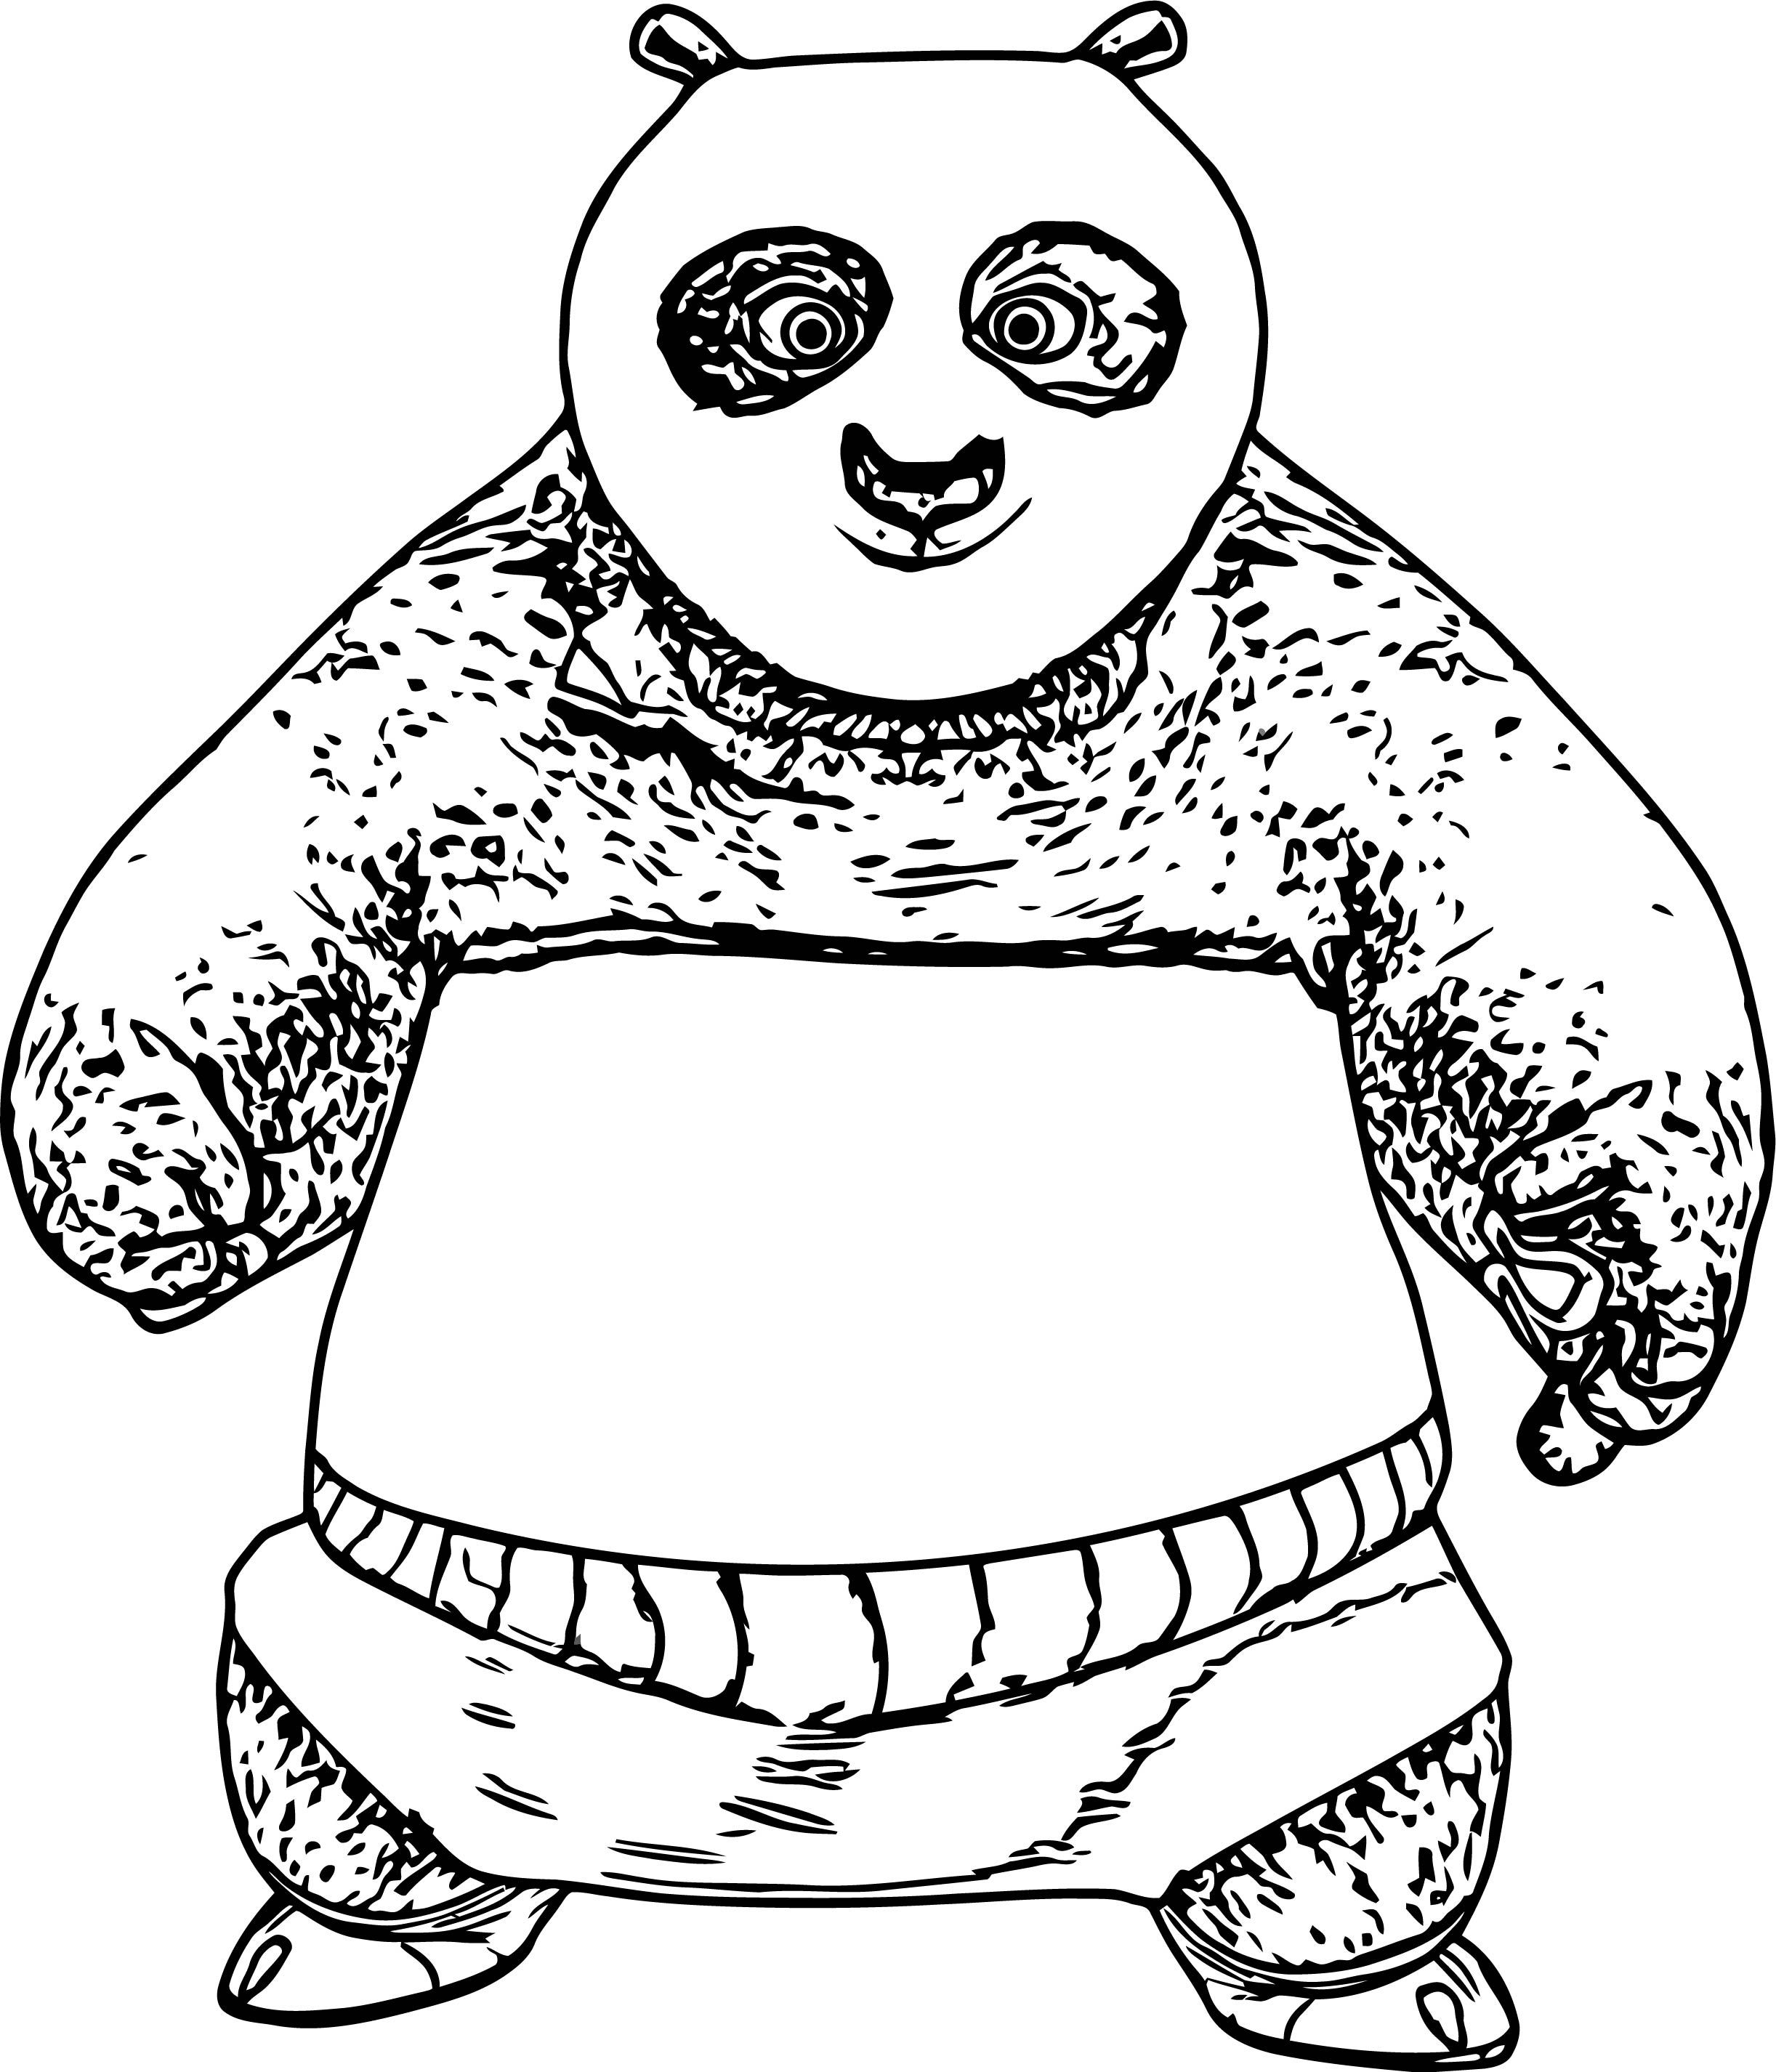 Kung Fu Panda We Front View Coloring Page